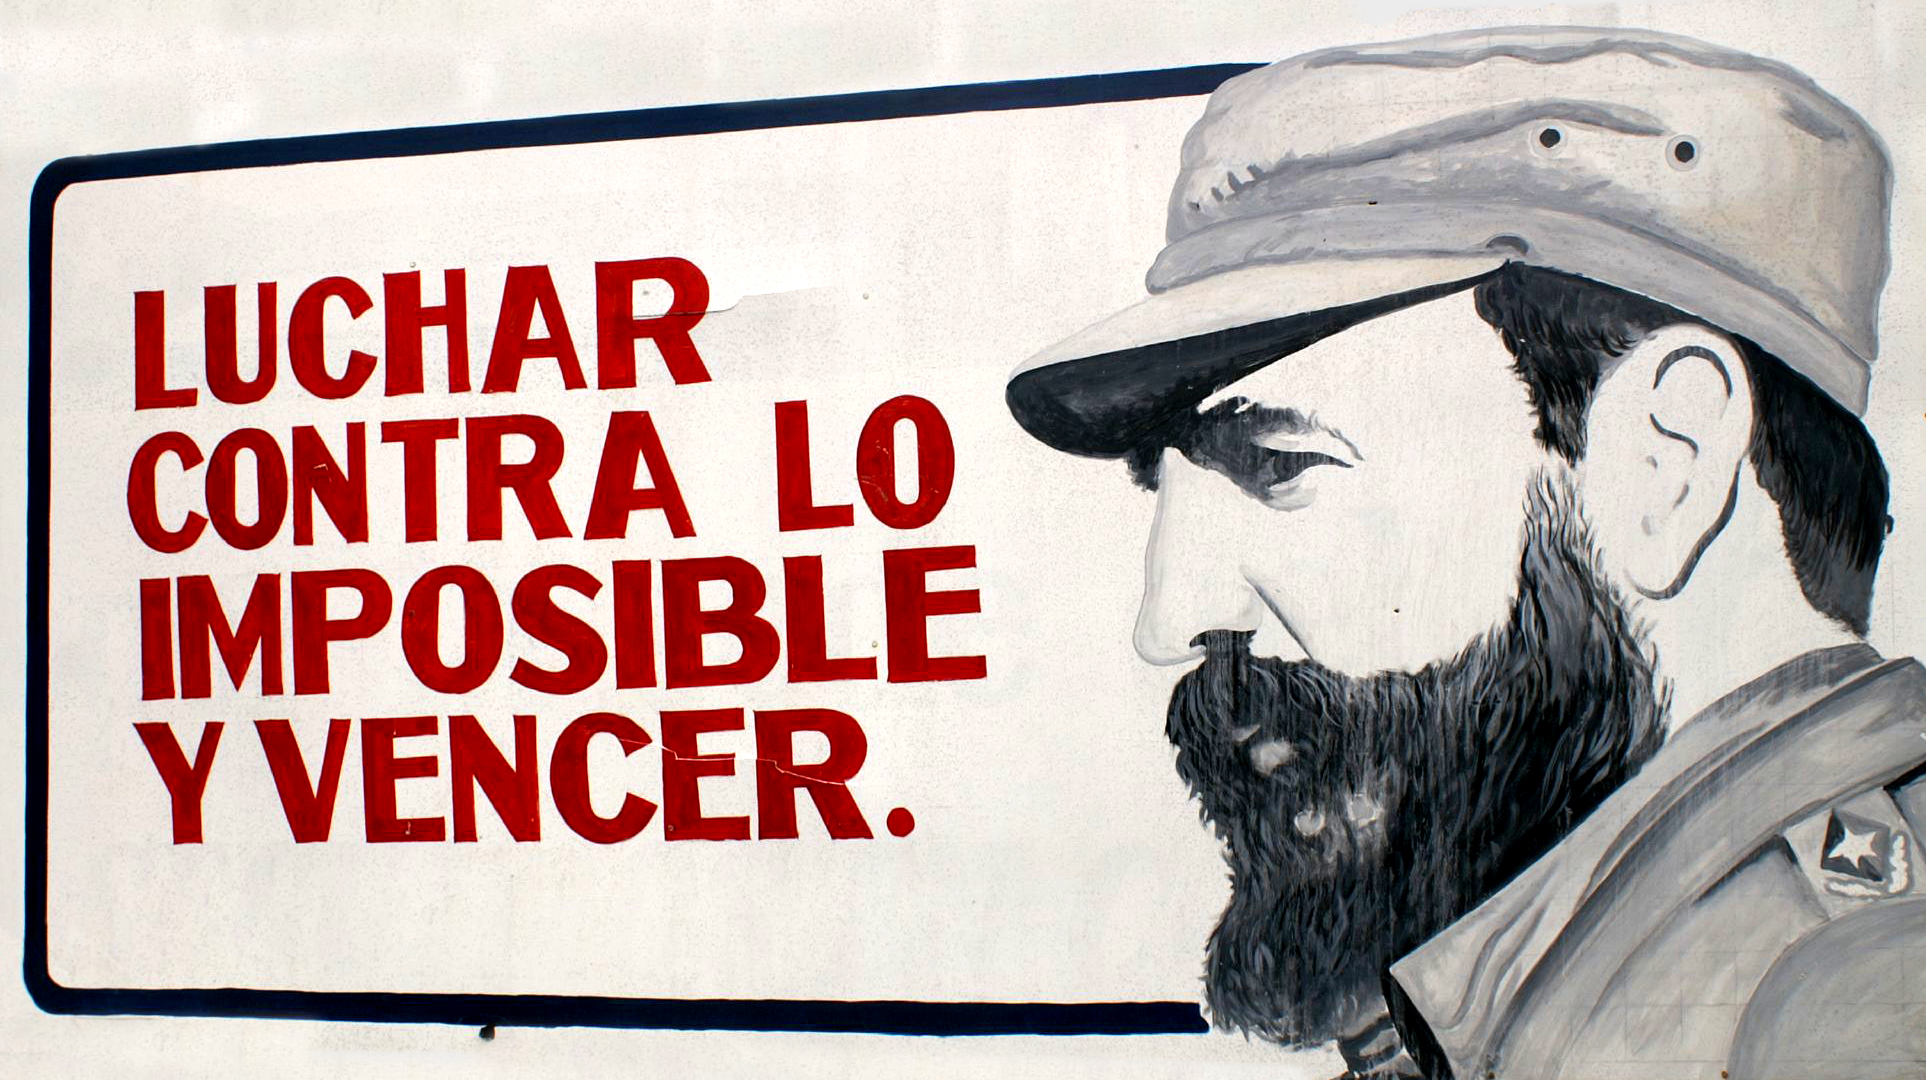 """An example of proganda used by Castro. This translates to """"To fight against the impossible things and to win"""""""